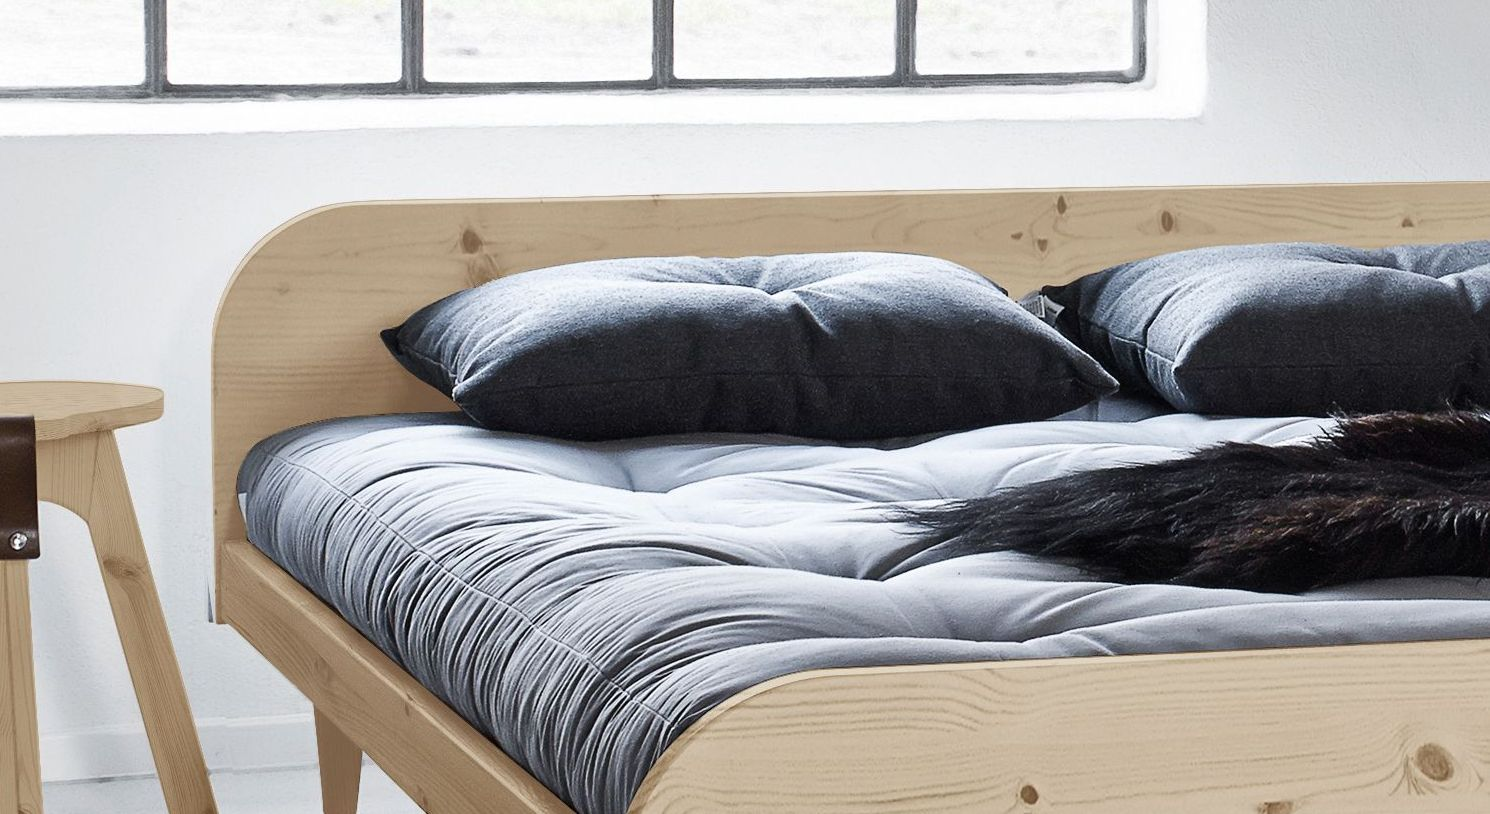 futonbett aus massiver kiefer design nach feng shui lenola. Black Bedroom Furniture Sets. Home Design Ideas